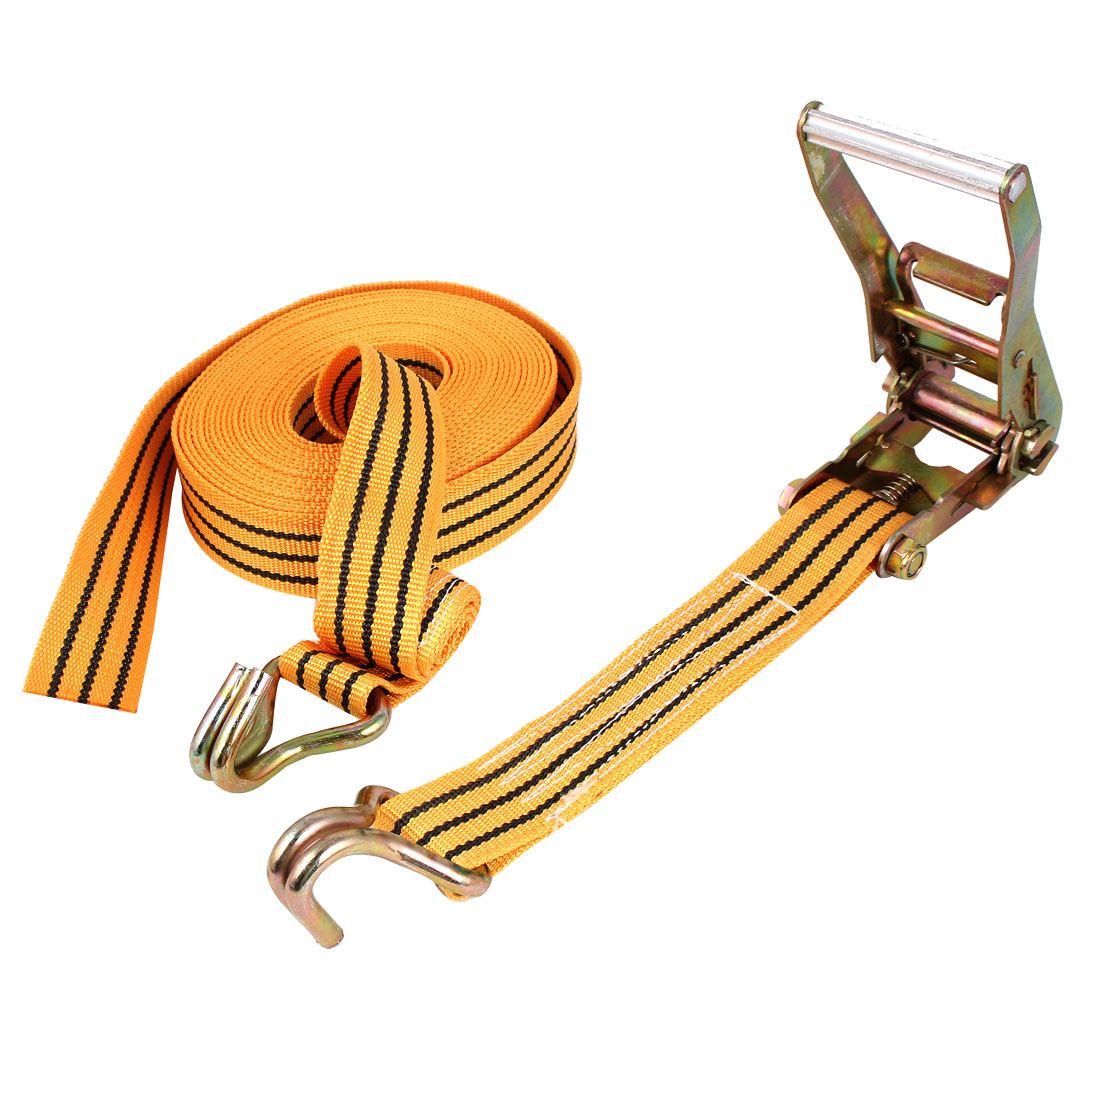 Truck Car Luggage Binding Double J Hooks Ratchet Tie Down Strap 10M